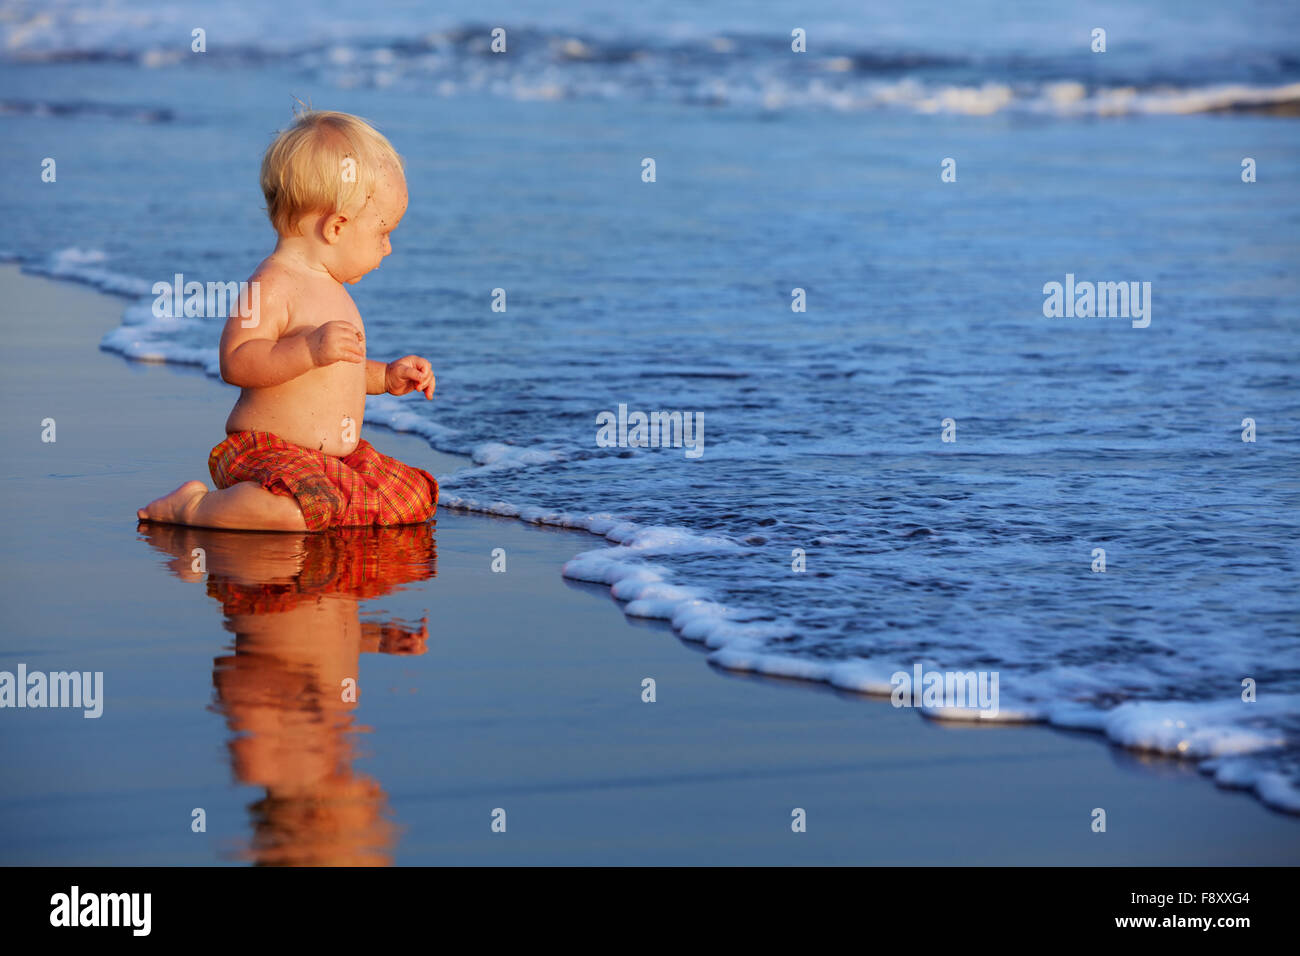 On sunset beach funny baby sit on black wet sand and crawling to sea surf for swimming in waves. - Stock Image